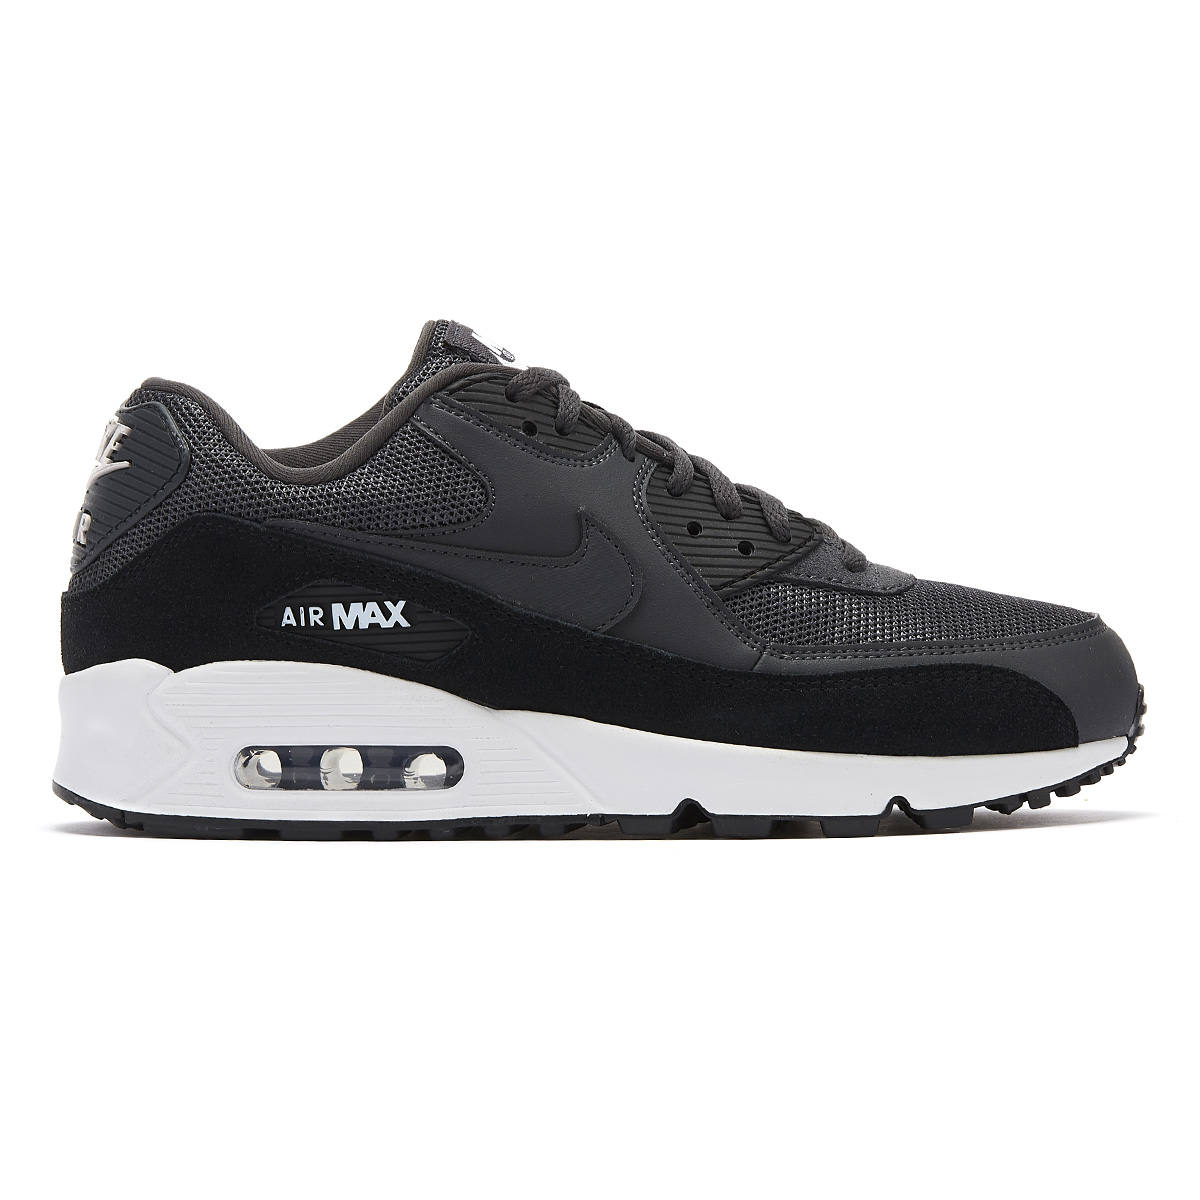 Details about Nike Air Max 90 Essential Mens Black White Trainers Lace Up Sport Casual Shoes